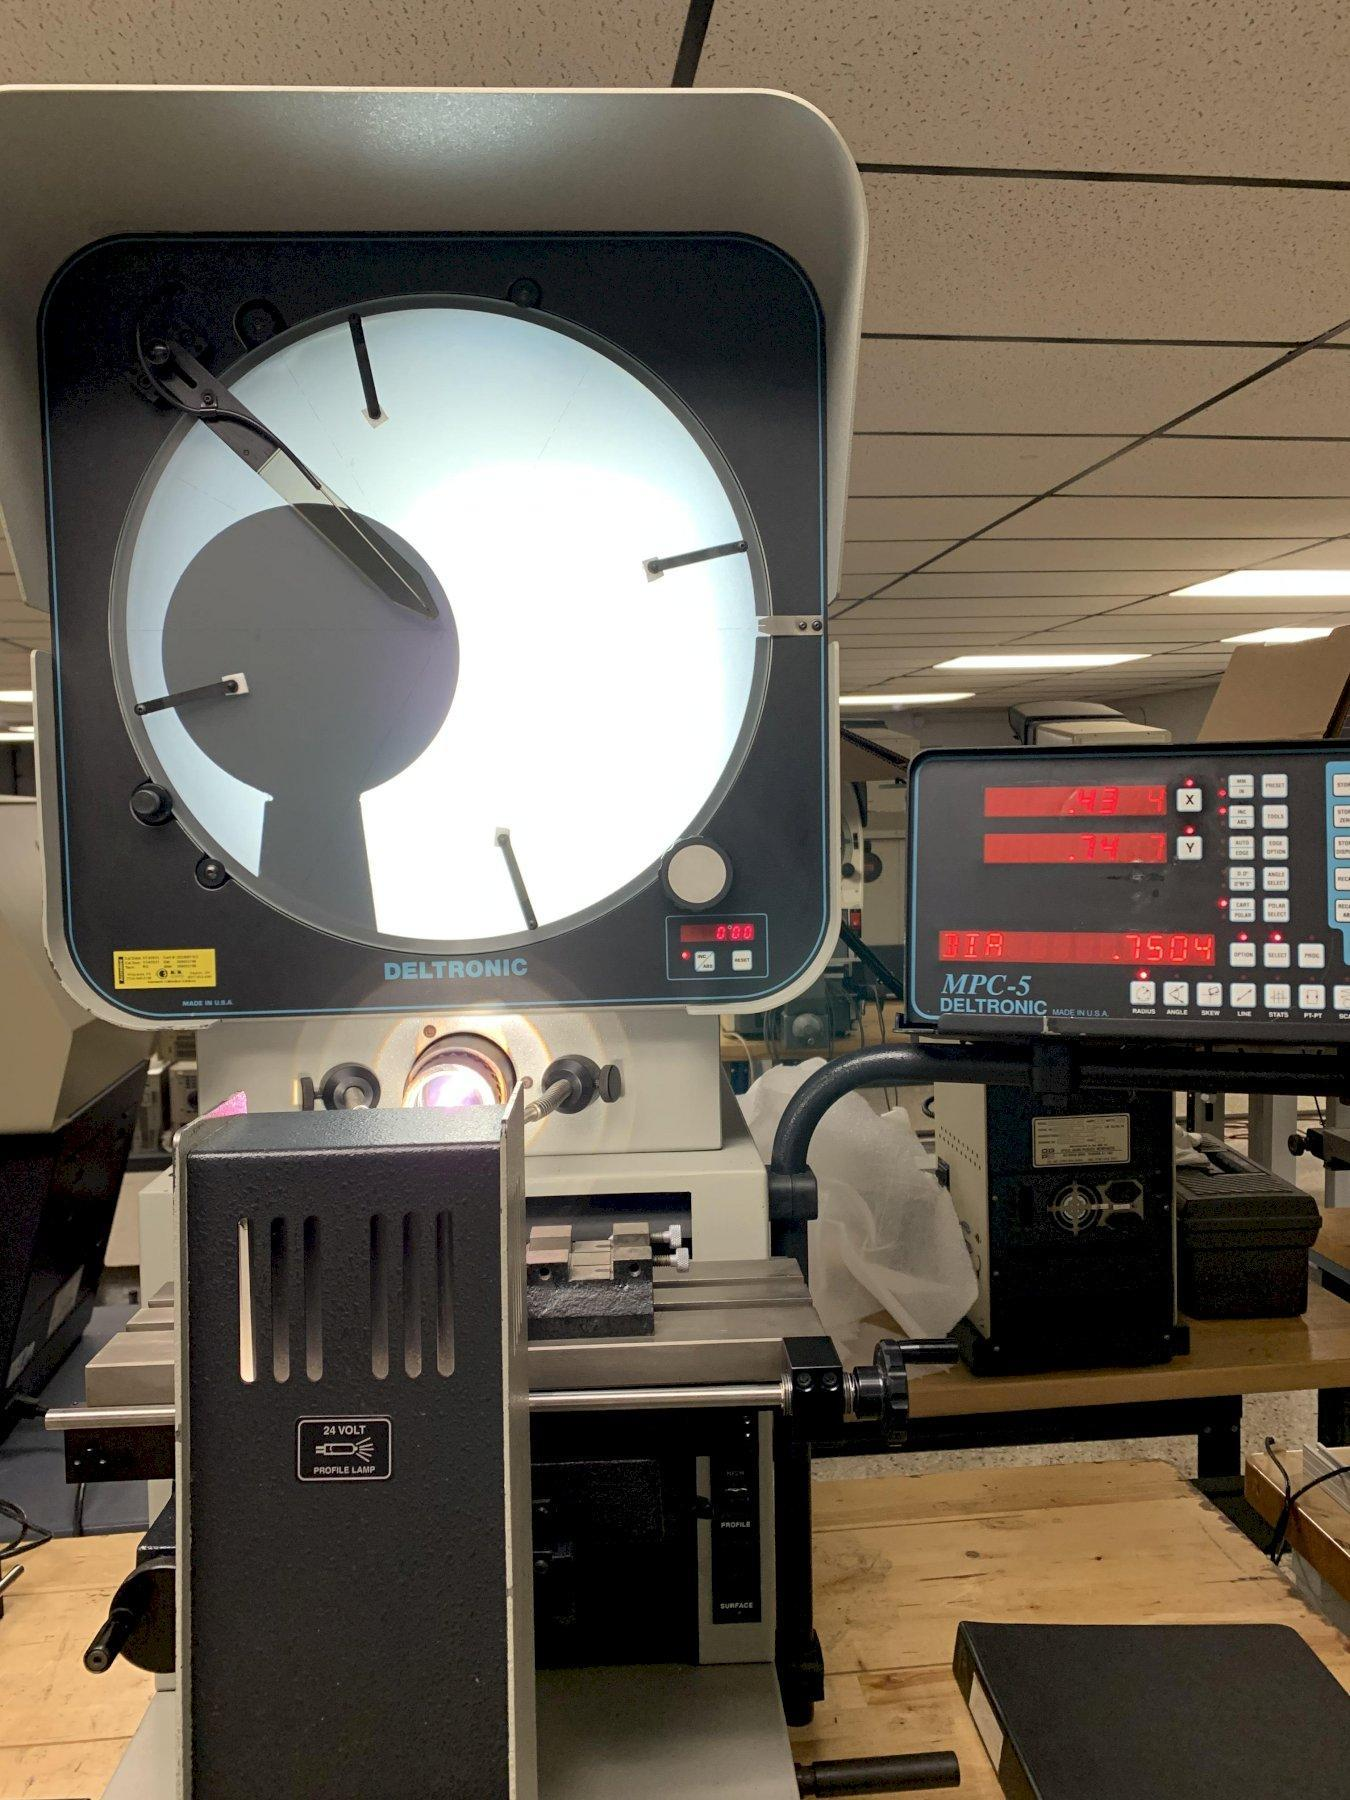 """16"""" Deltronic Model DH216 Bench Top Optical Comparator, S/N 398035768, New 1998."""